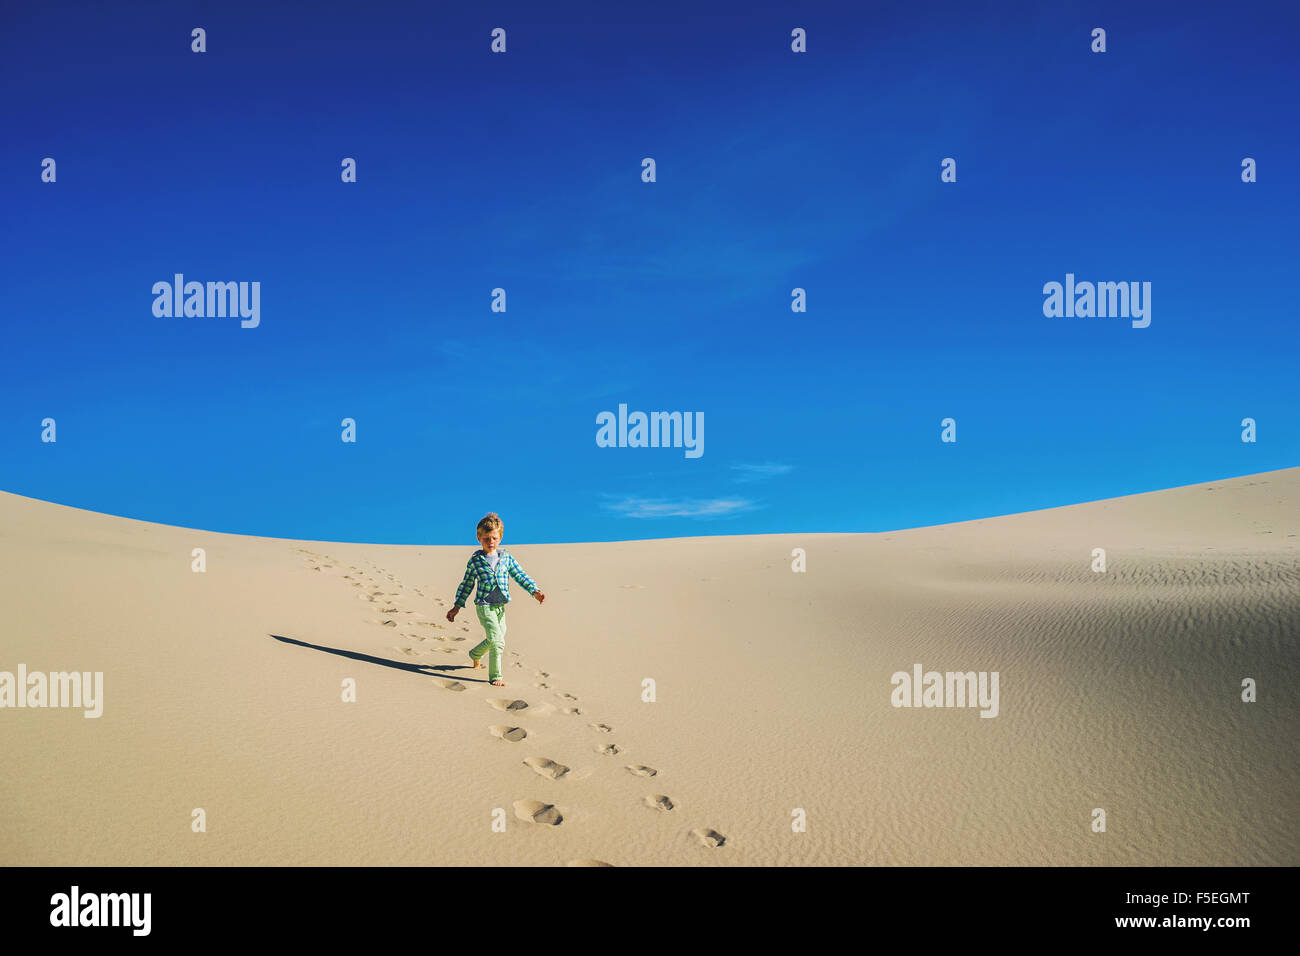 Boy running down a sand dune - Stock Image